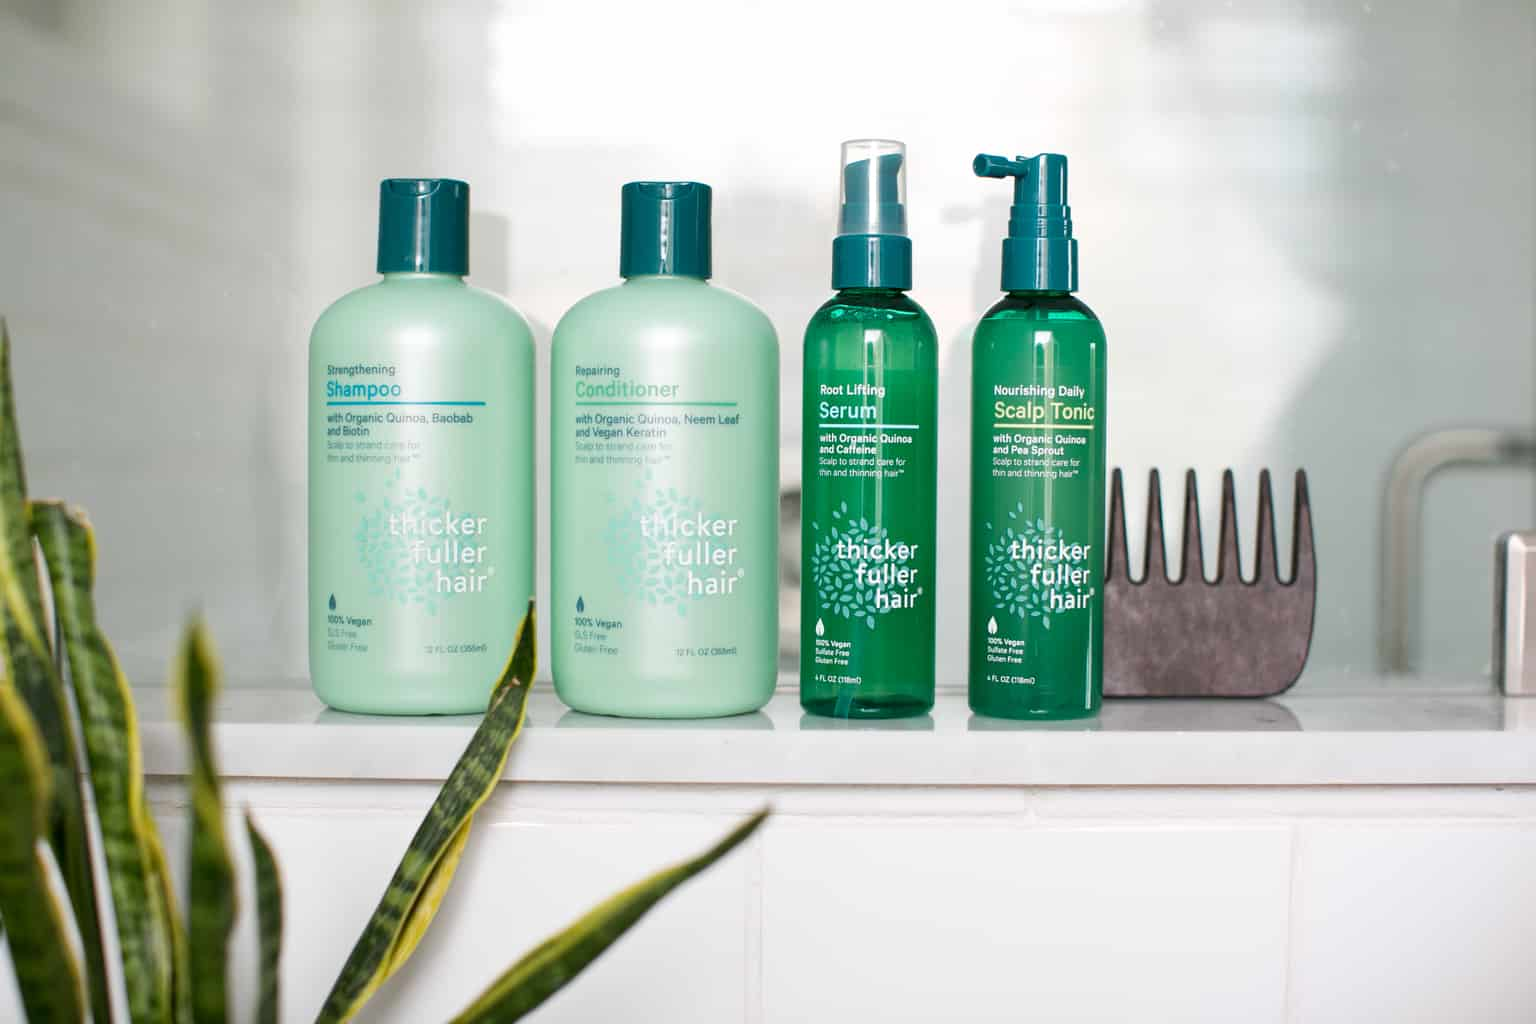 Thicker Fuller Hair products